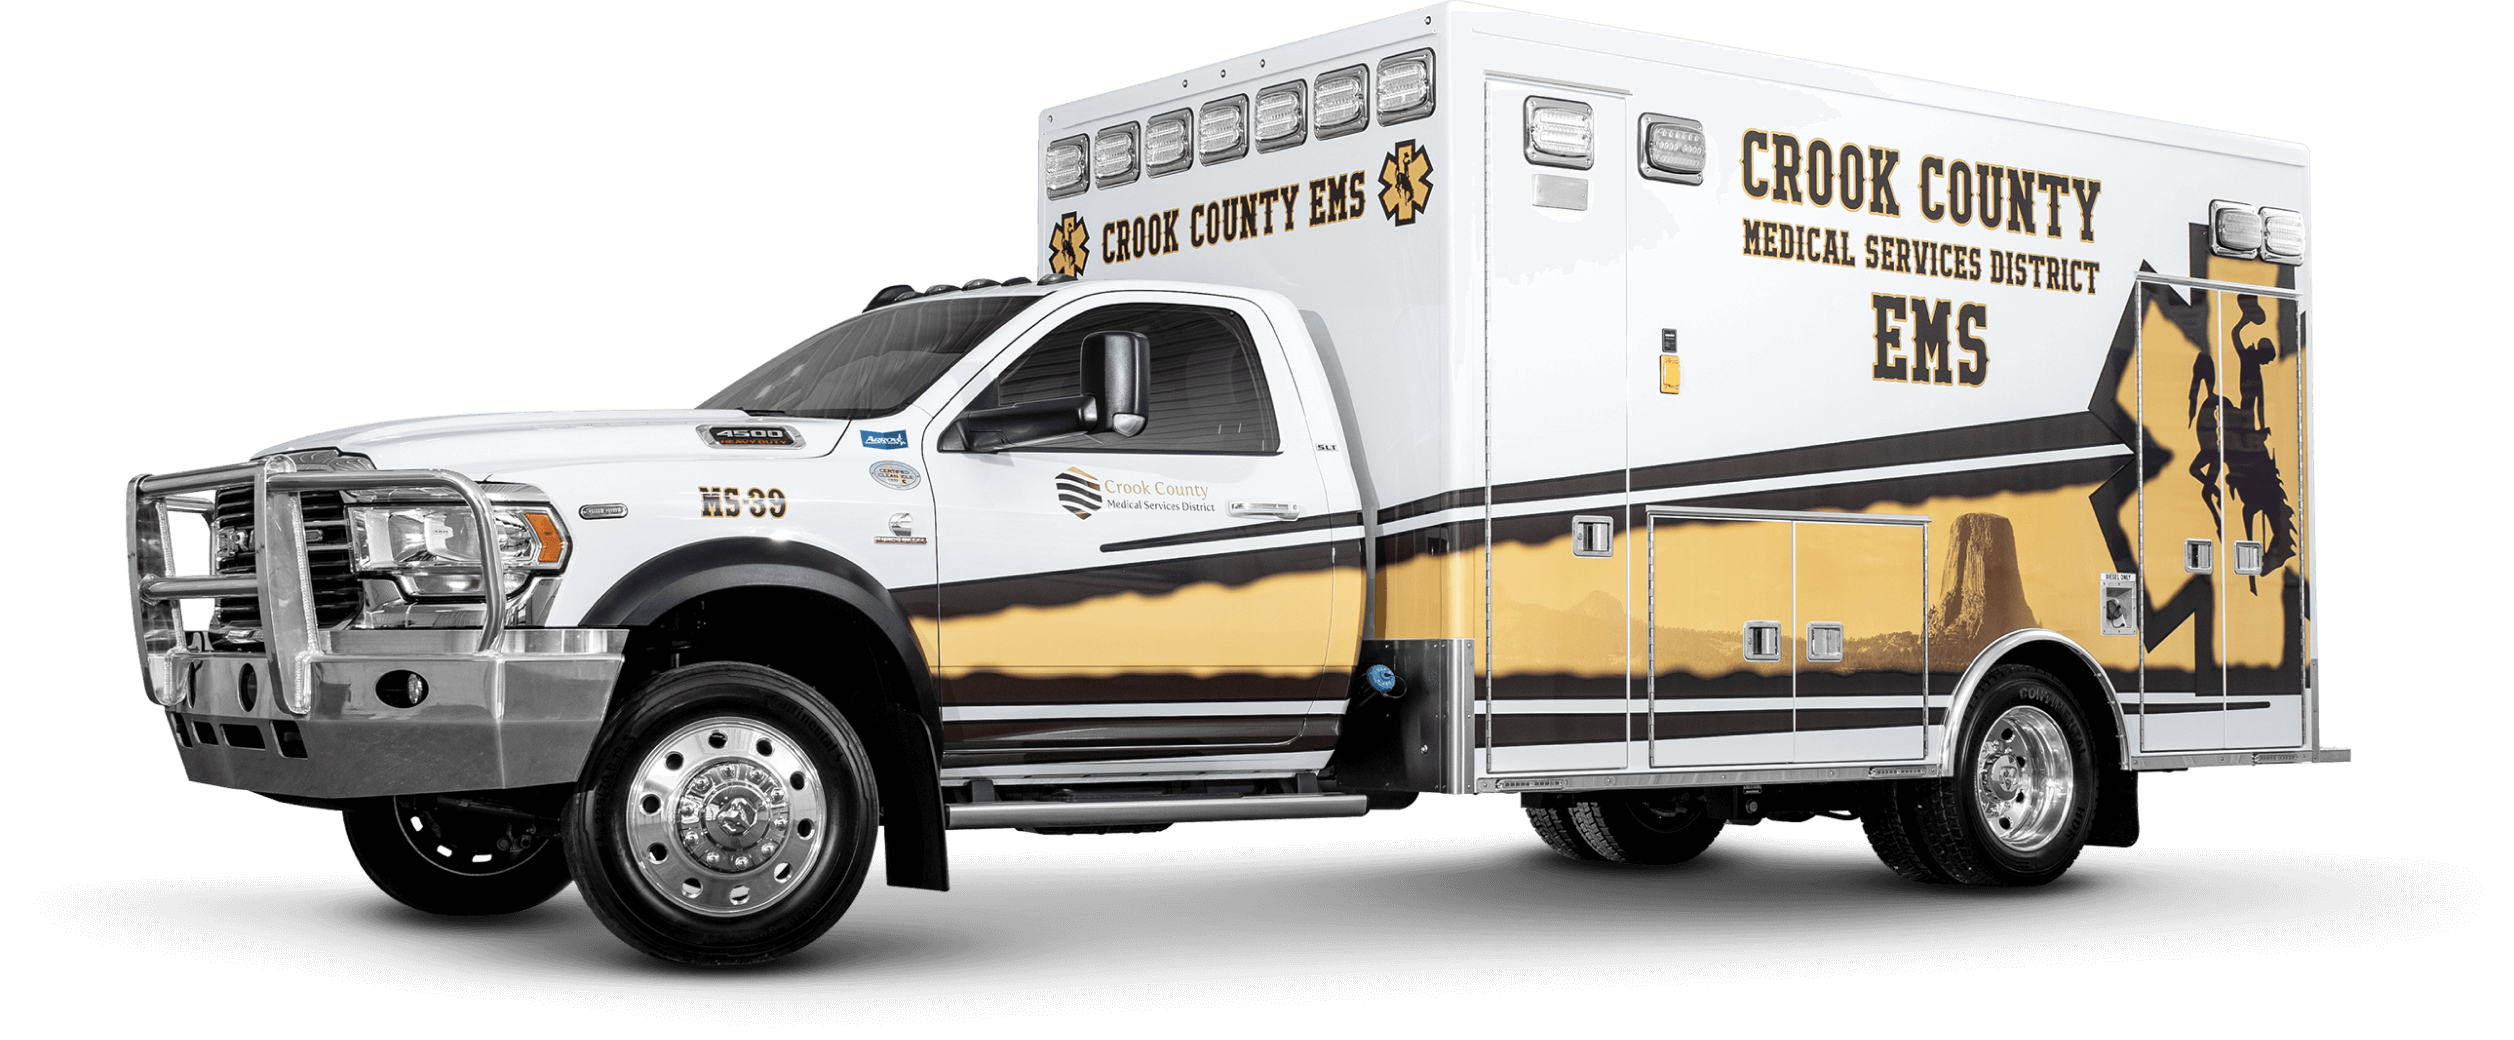 Driver Side View of Crook County Ambulance